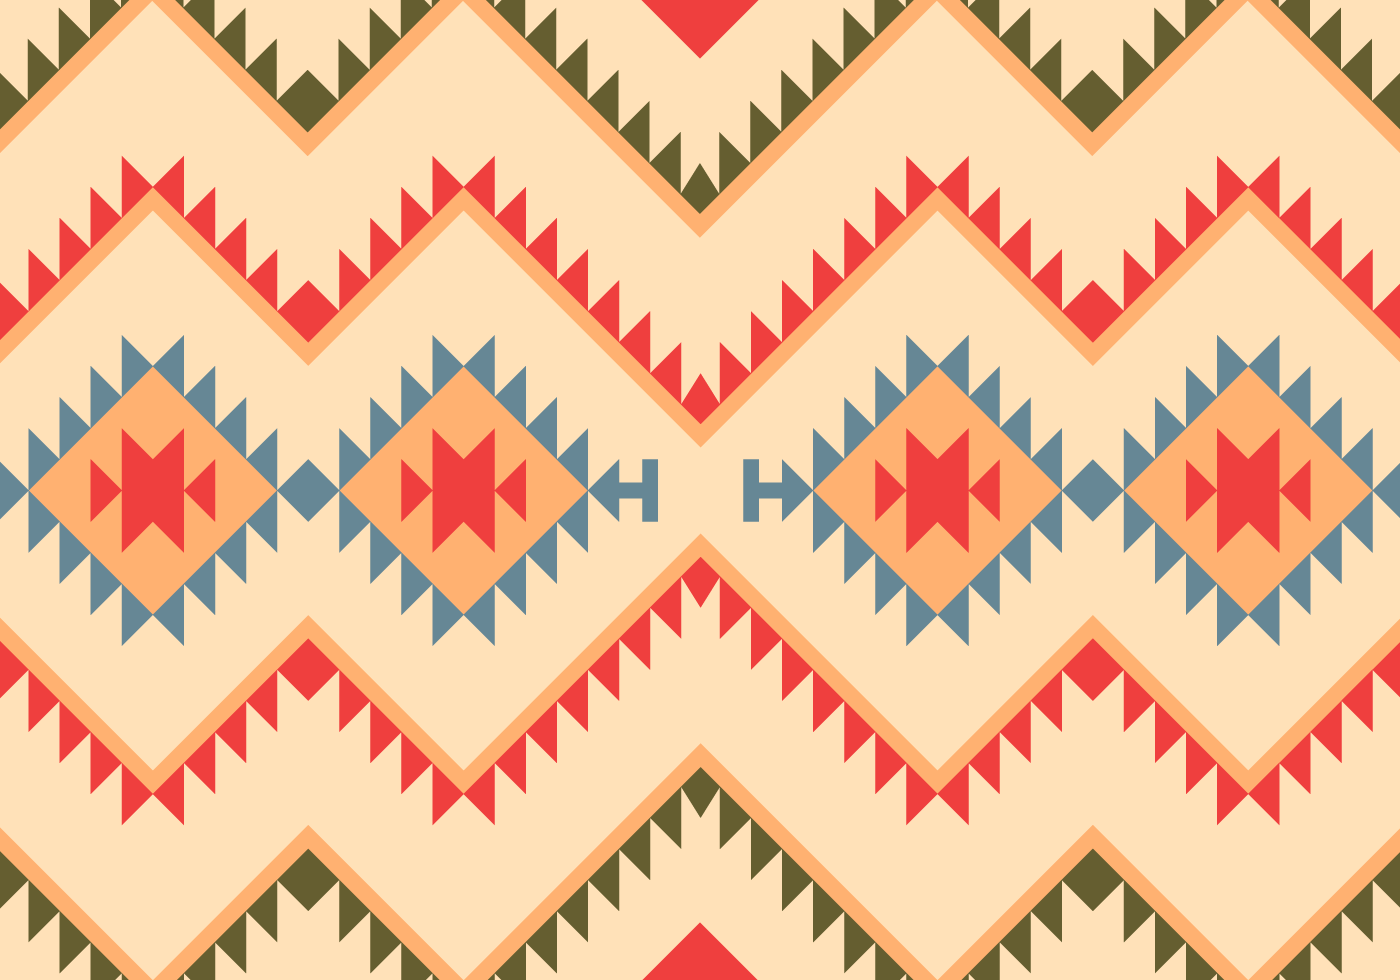 Native American Patterns Free Vector Art - (10159 Free Downloads ...